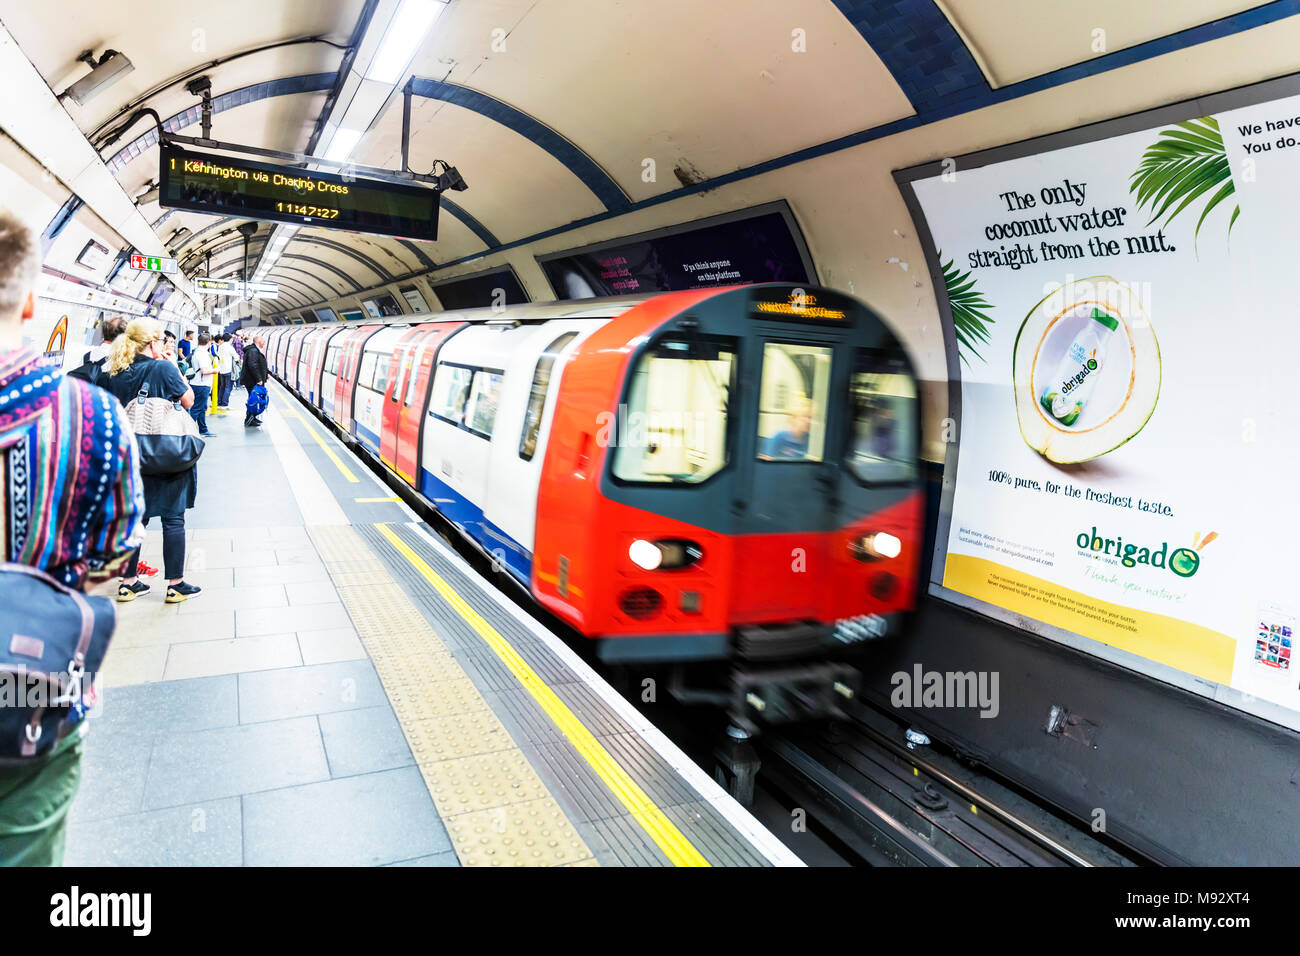 London tube train, London Underground train, London underground trains, London tube train, London tube trains, Tube underground train, London city, UK - Stock Image